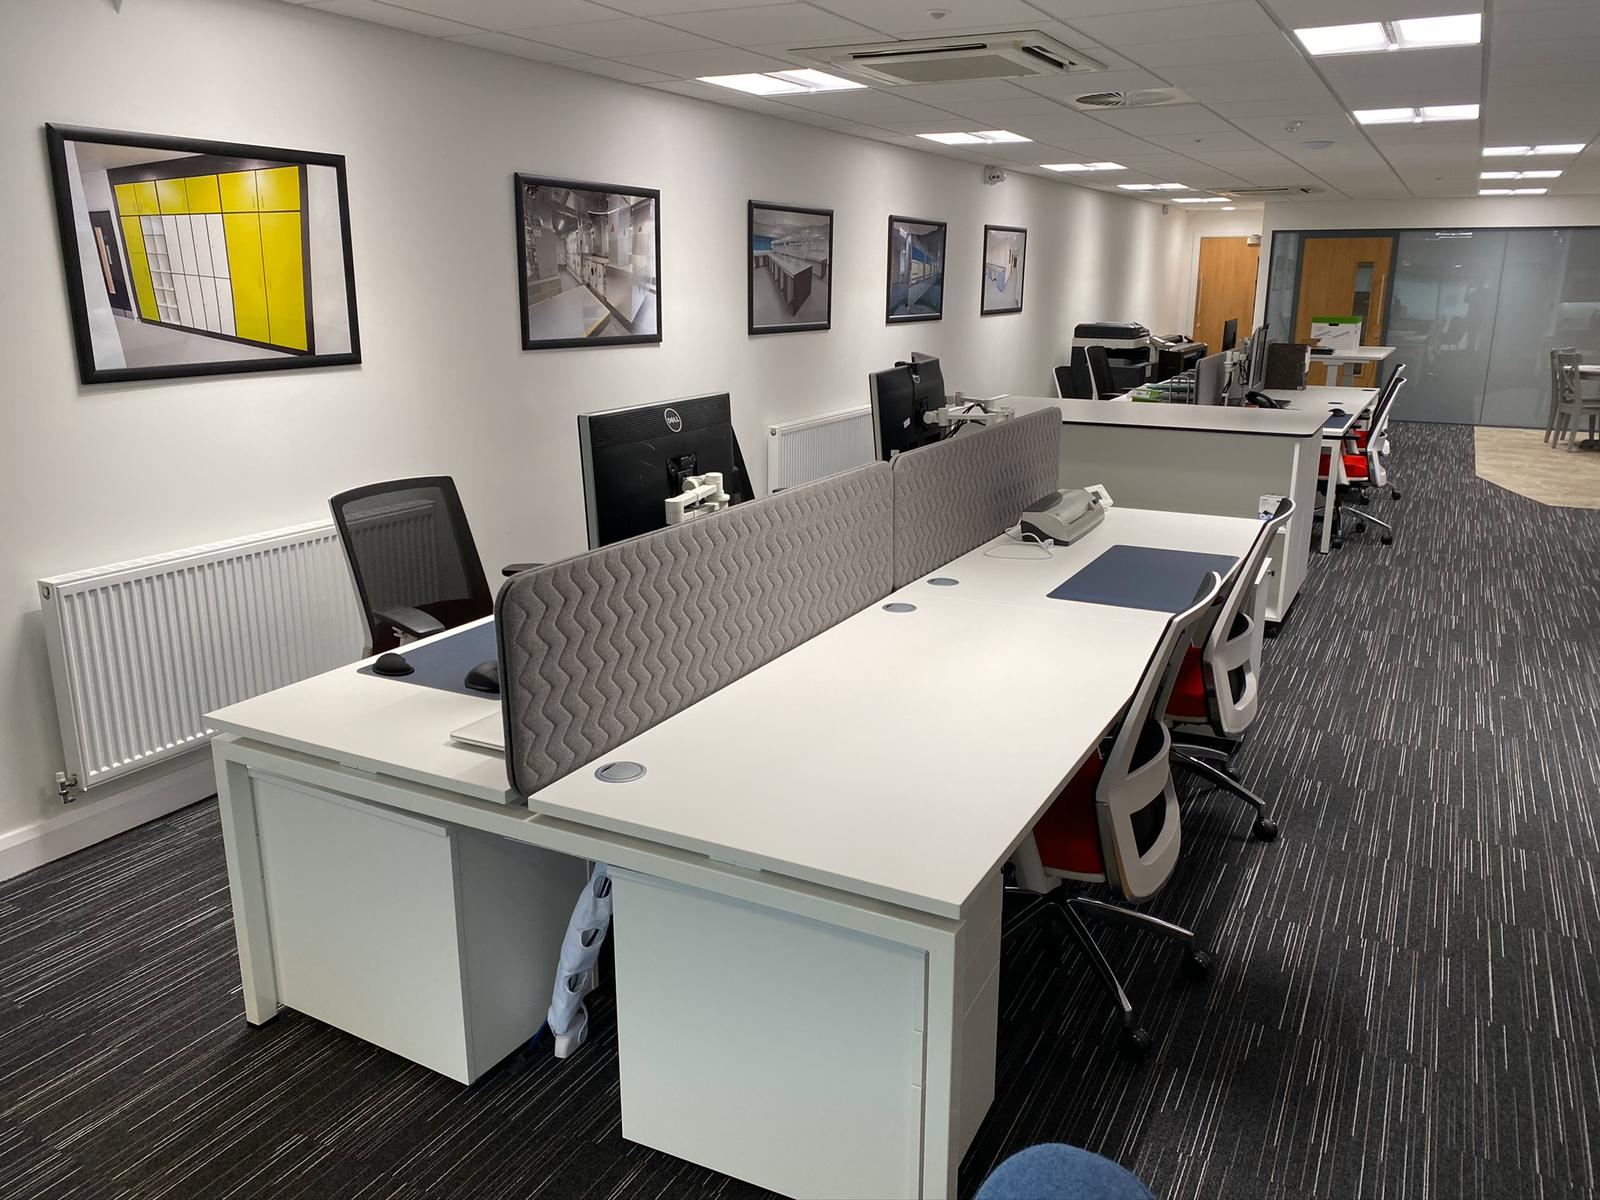 WhatsApp Image 2020-05-01 at 11.05.34 - Doors Desk Office Space Desk Chairs Radiator Printer Computer Cable Ports Laminator